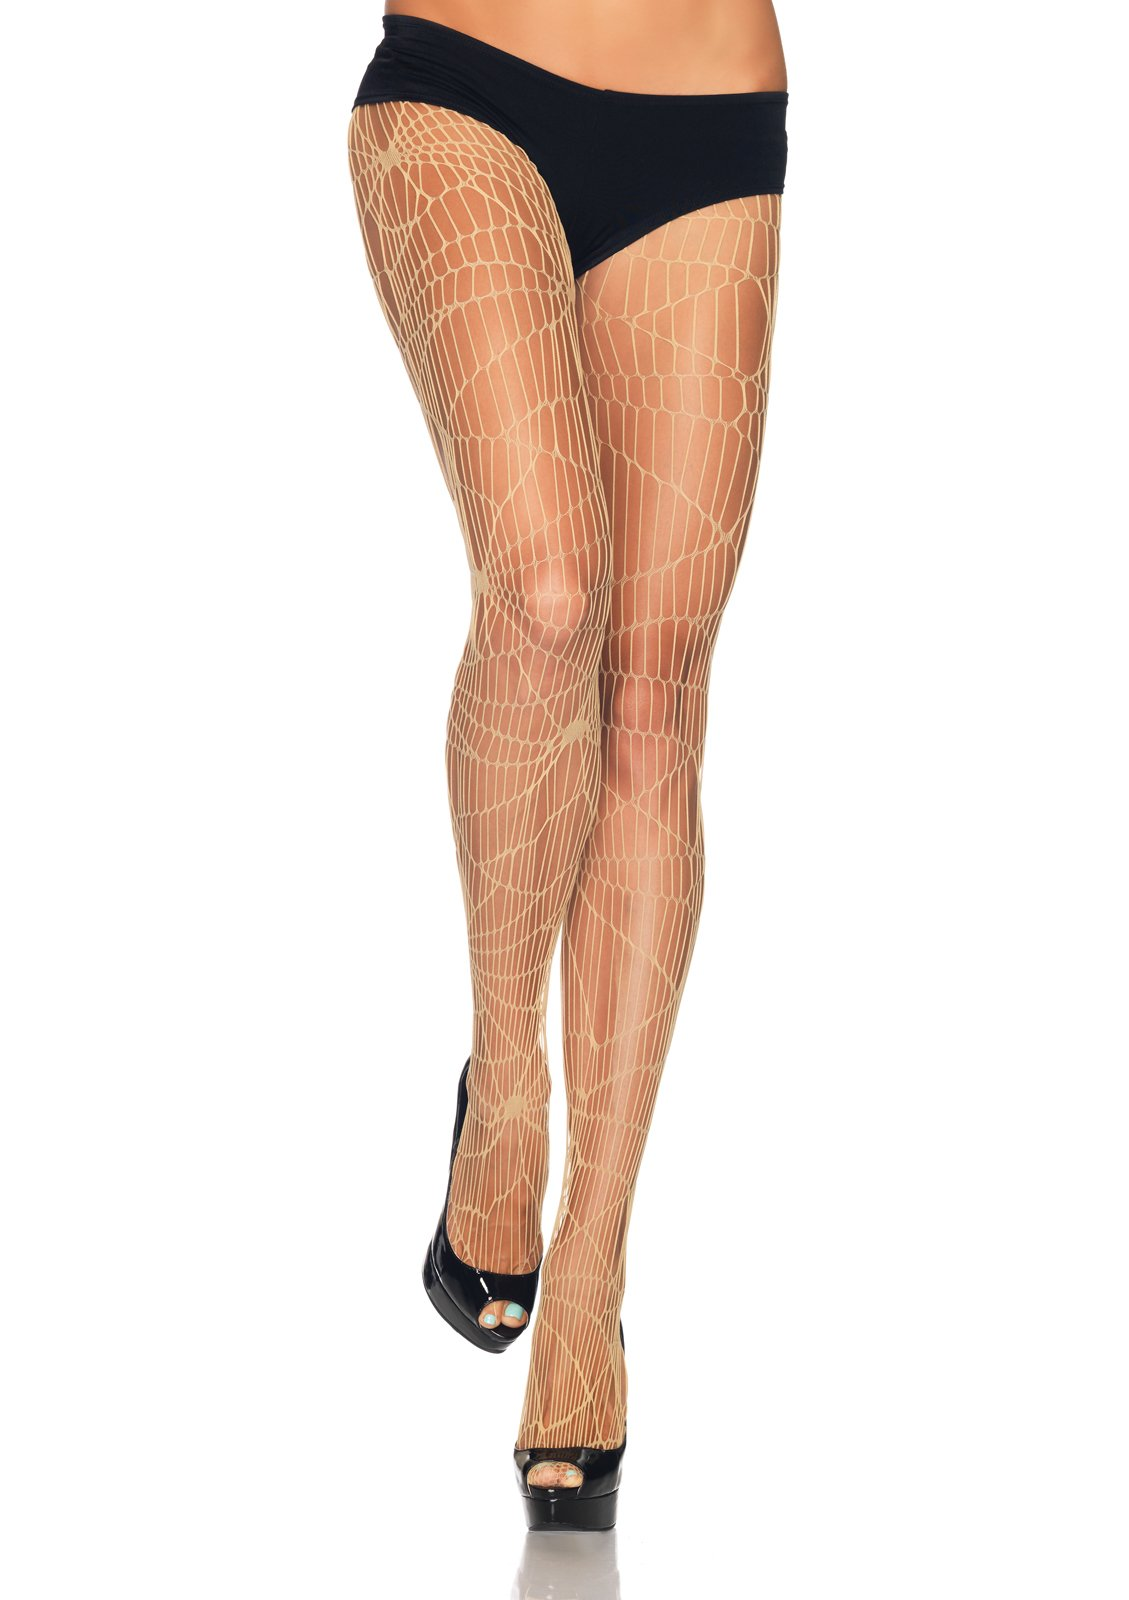 Distressed Net Nude Pantyhose (Adult)